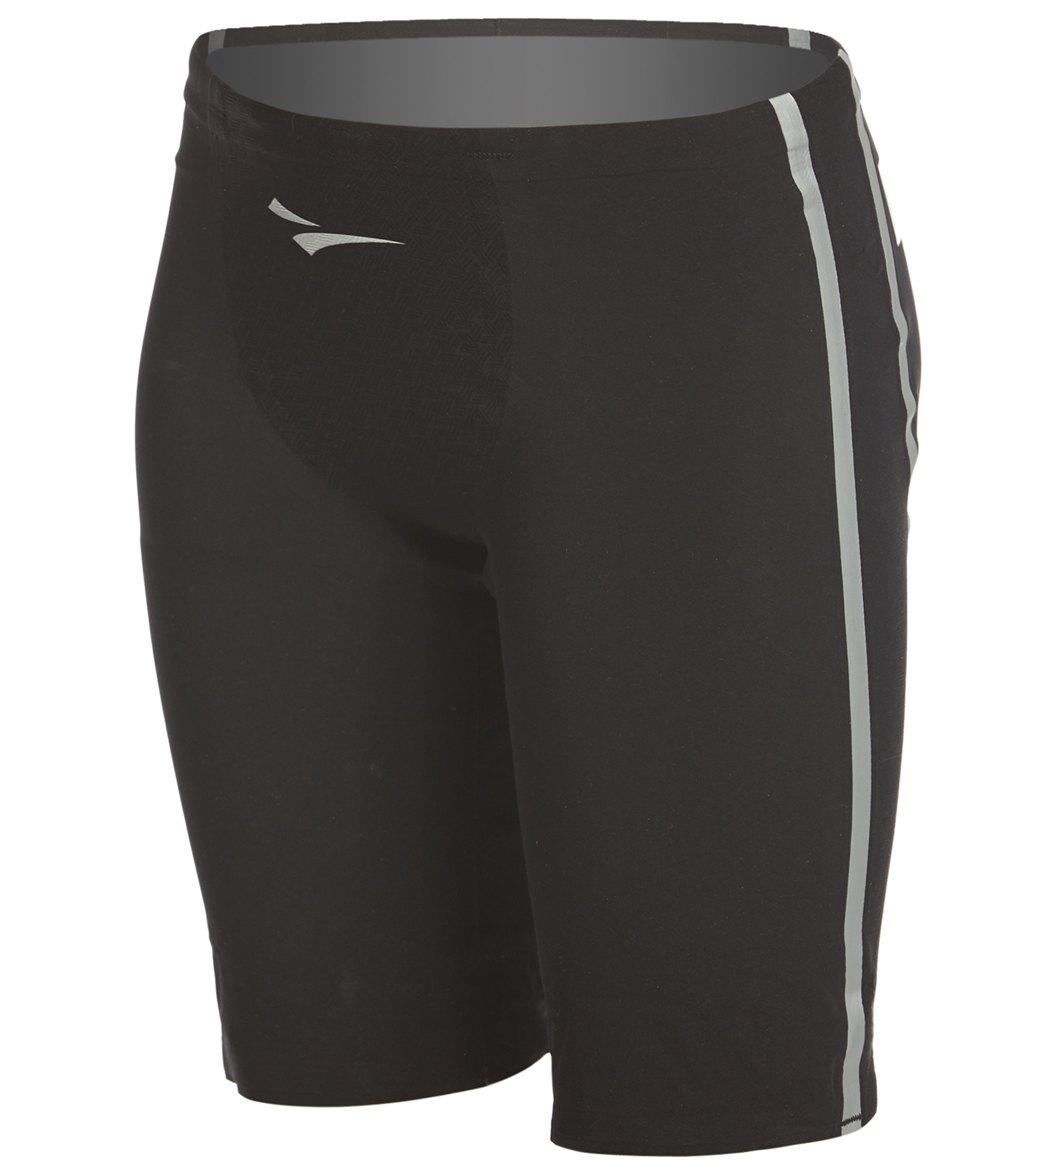 82f4bbab2a54f FINIS Men's Rival Jammer Tech Suit Swimsuit at SwimOutlet.com - Free  Shipping